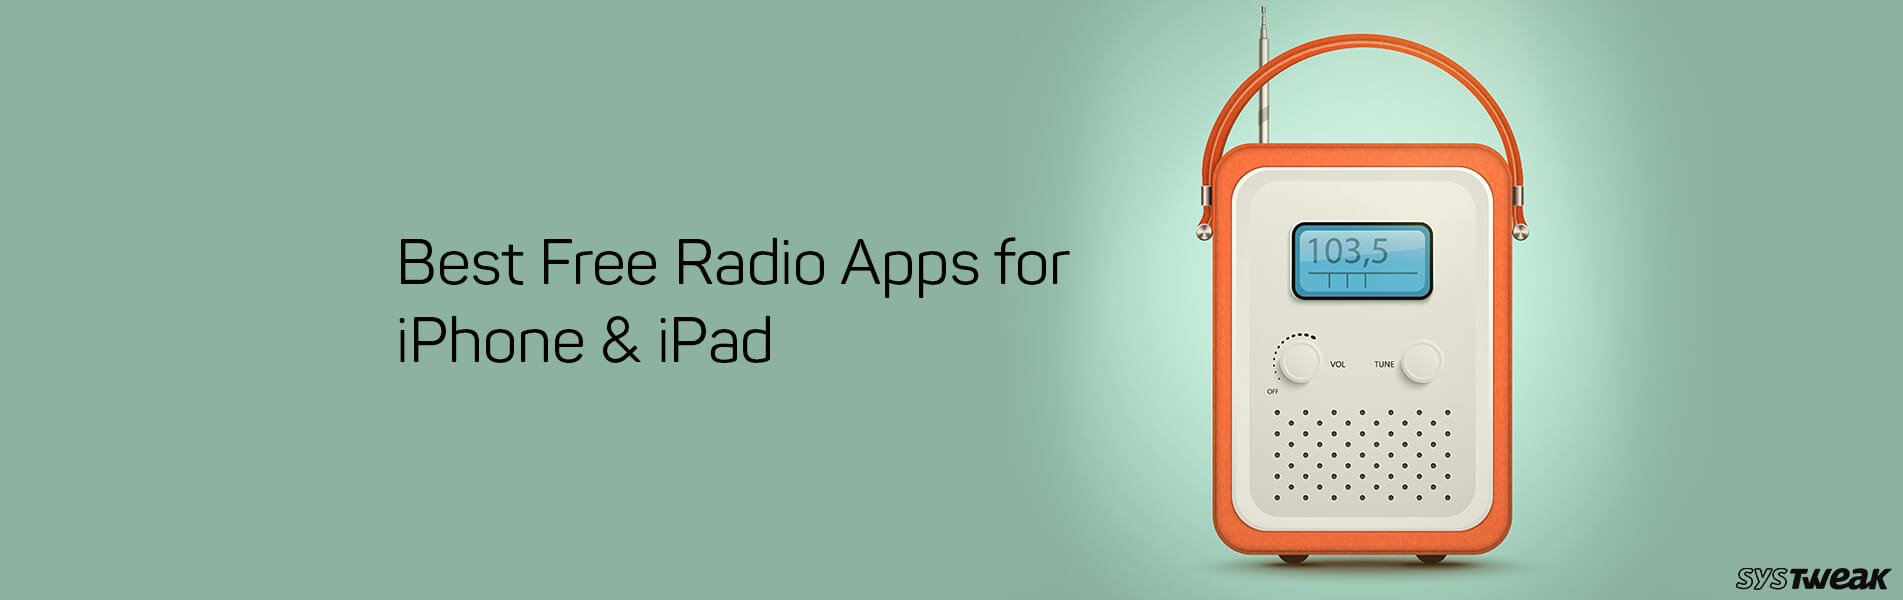 Best Free Radio Apps For iPhone & iPad